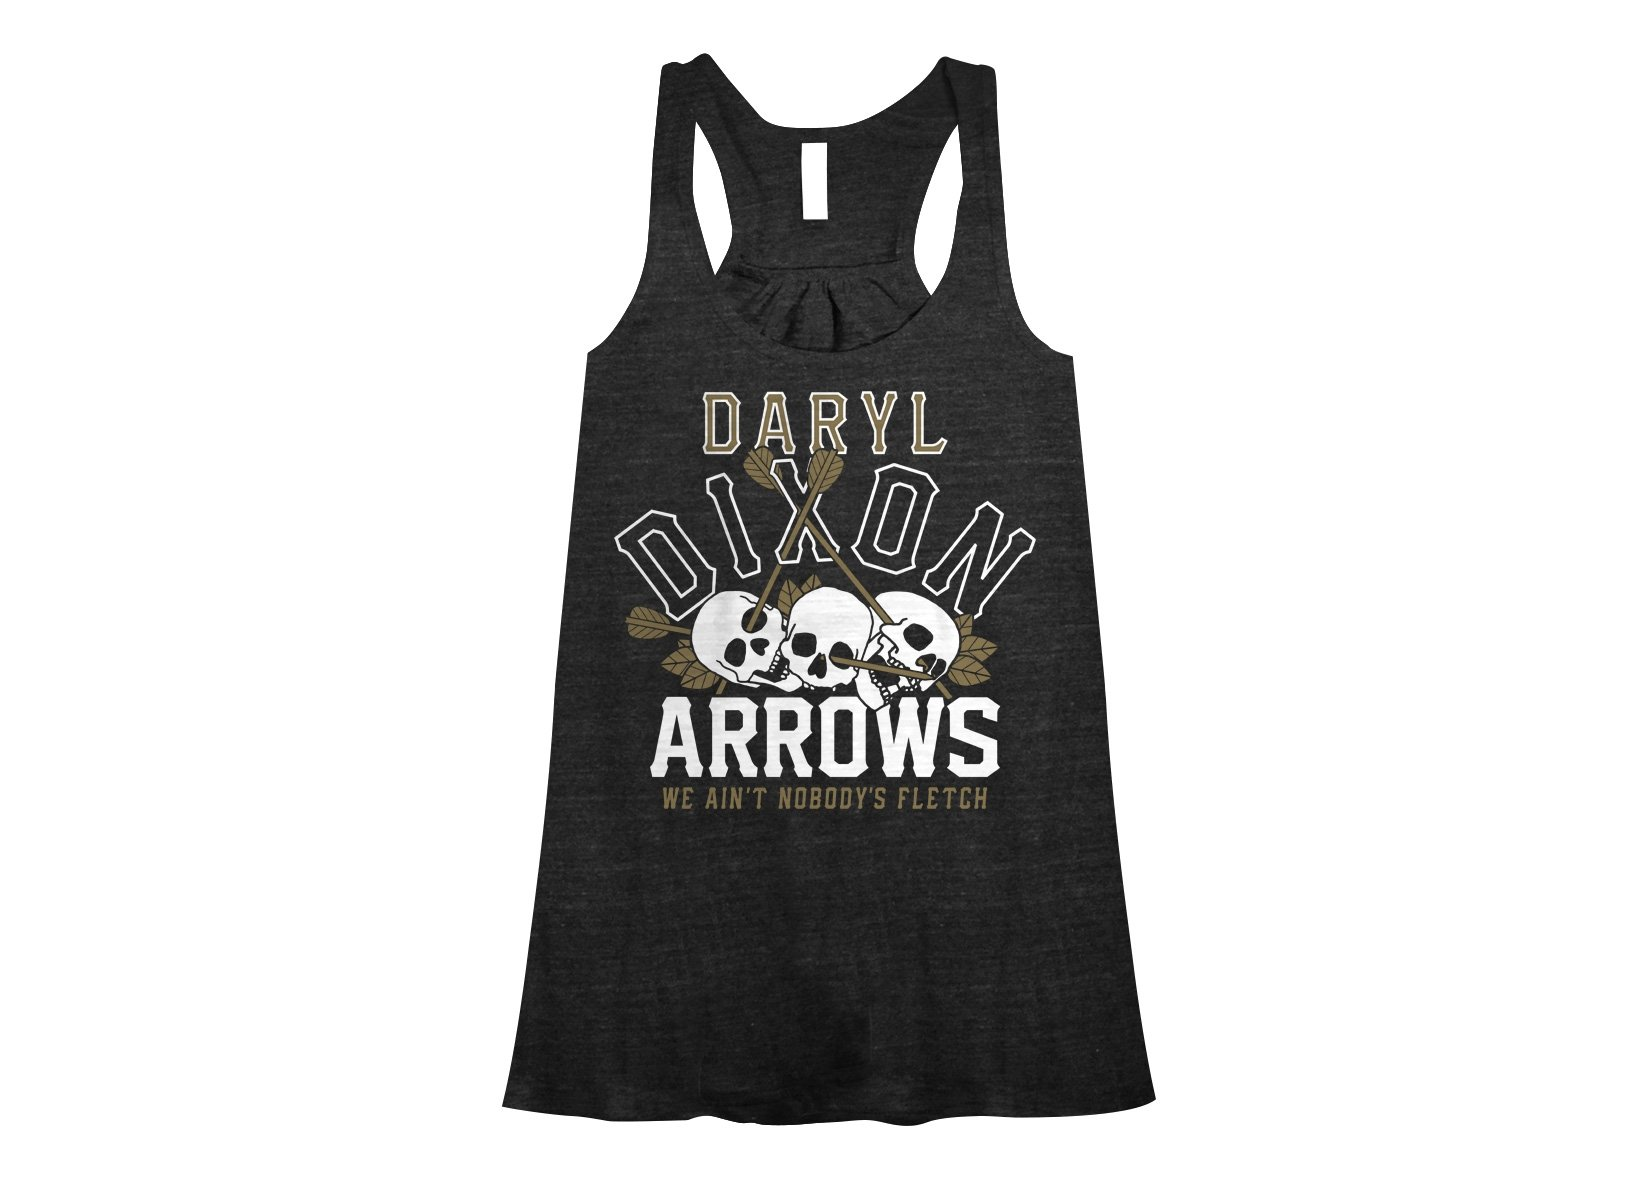 Dixon Arrows on Womens Tanks T-Shirt